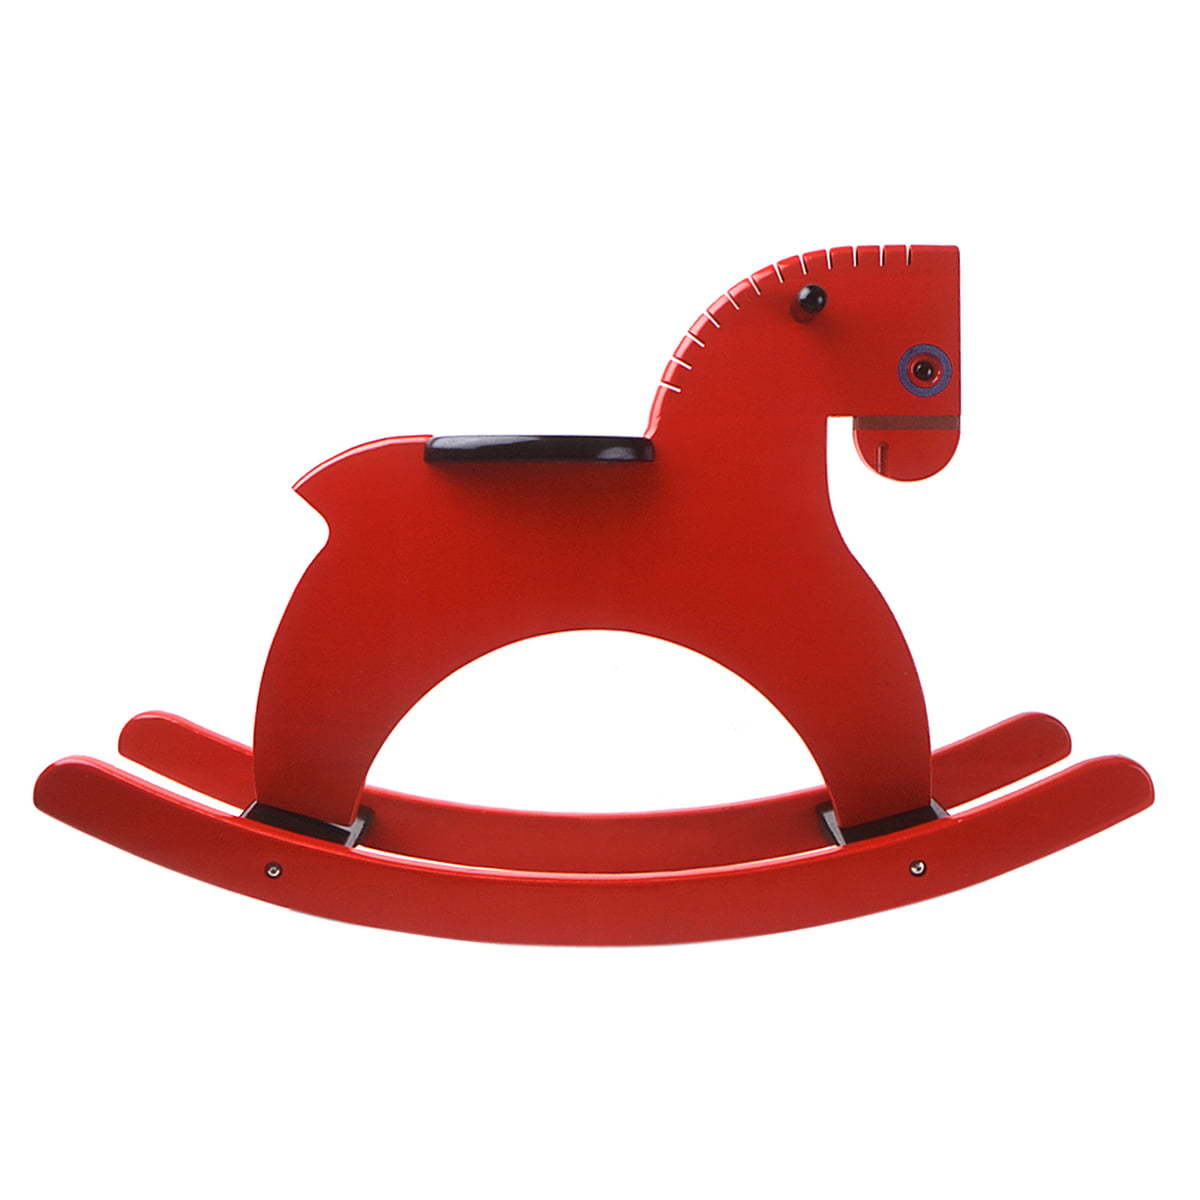 Playsam - Rocking Horse, rouge